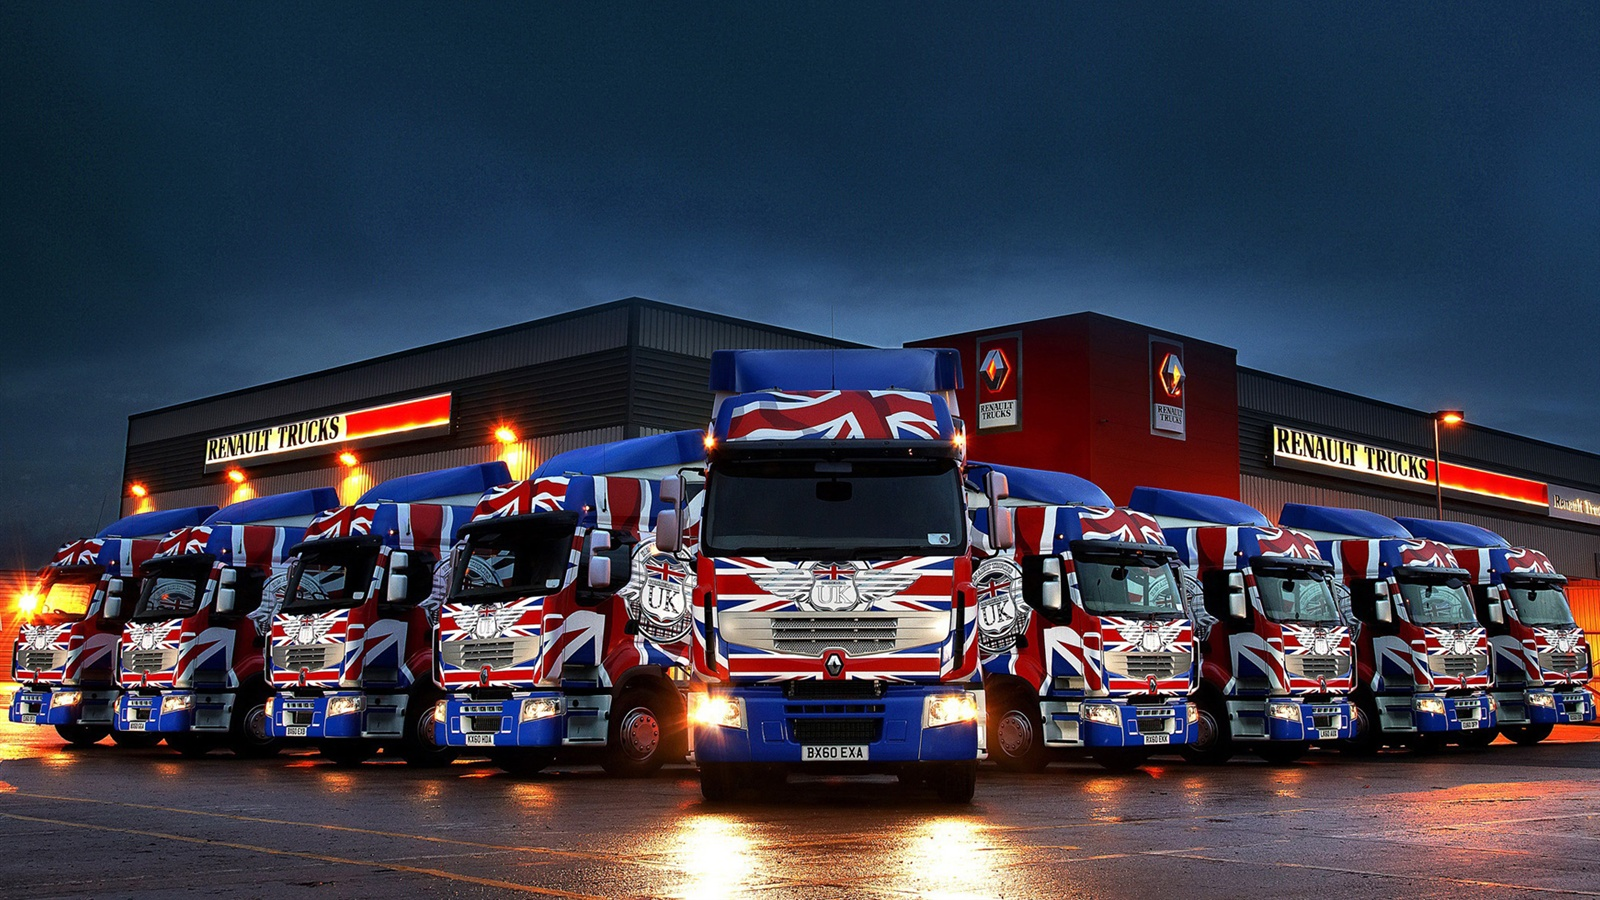 Renault trucks wallpaper - 1600x900